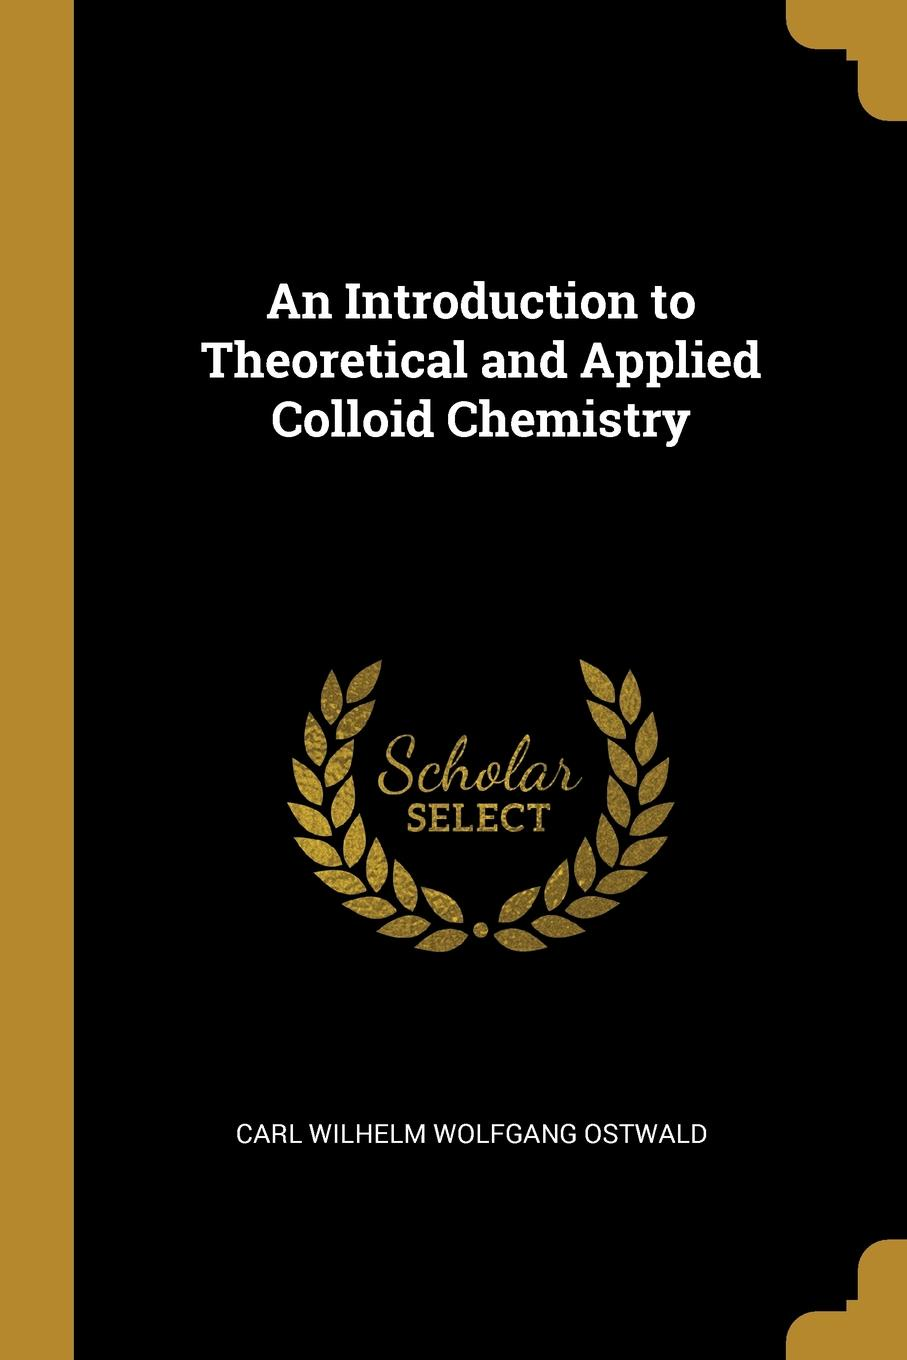 Carl Wilhelm Wolfgang Ostwald. An Introduction to Theoretical and Applied Colloid Chemistry